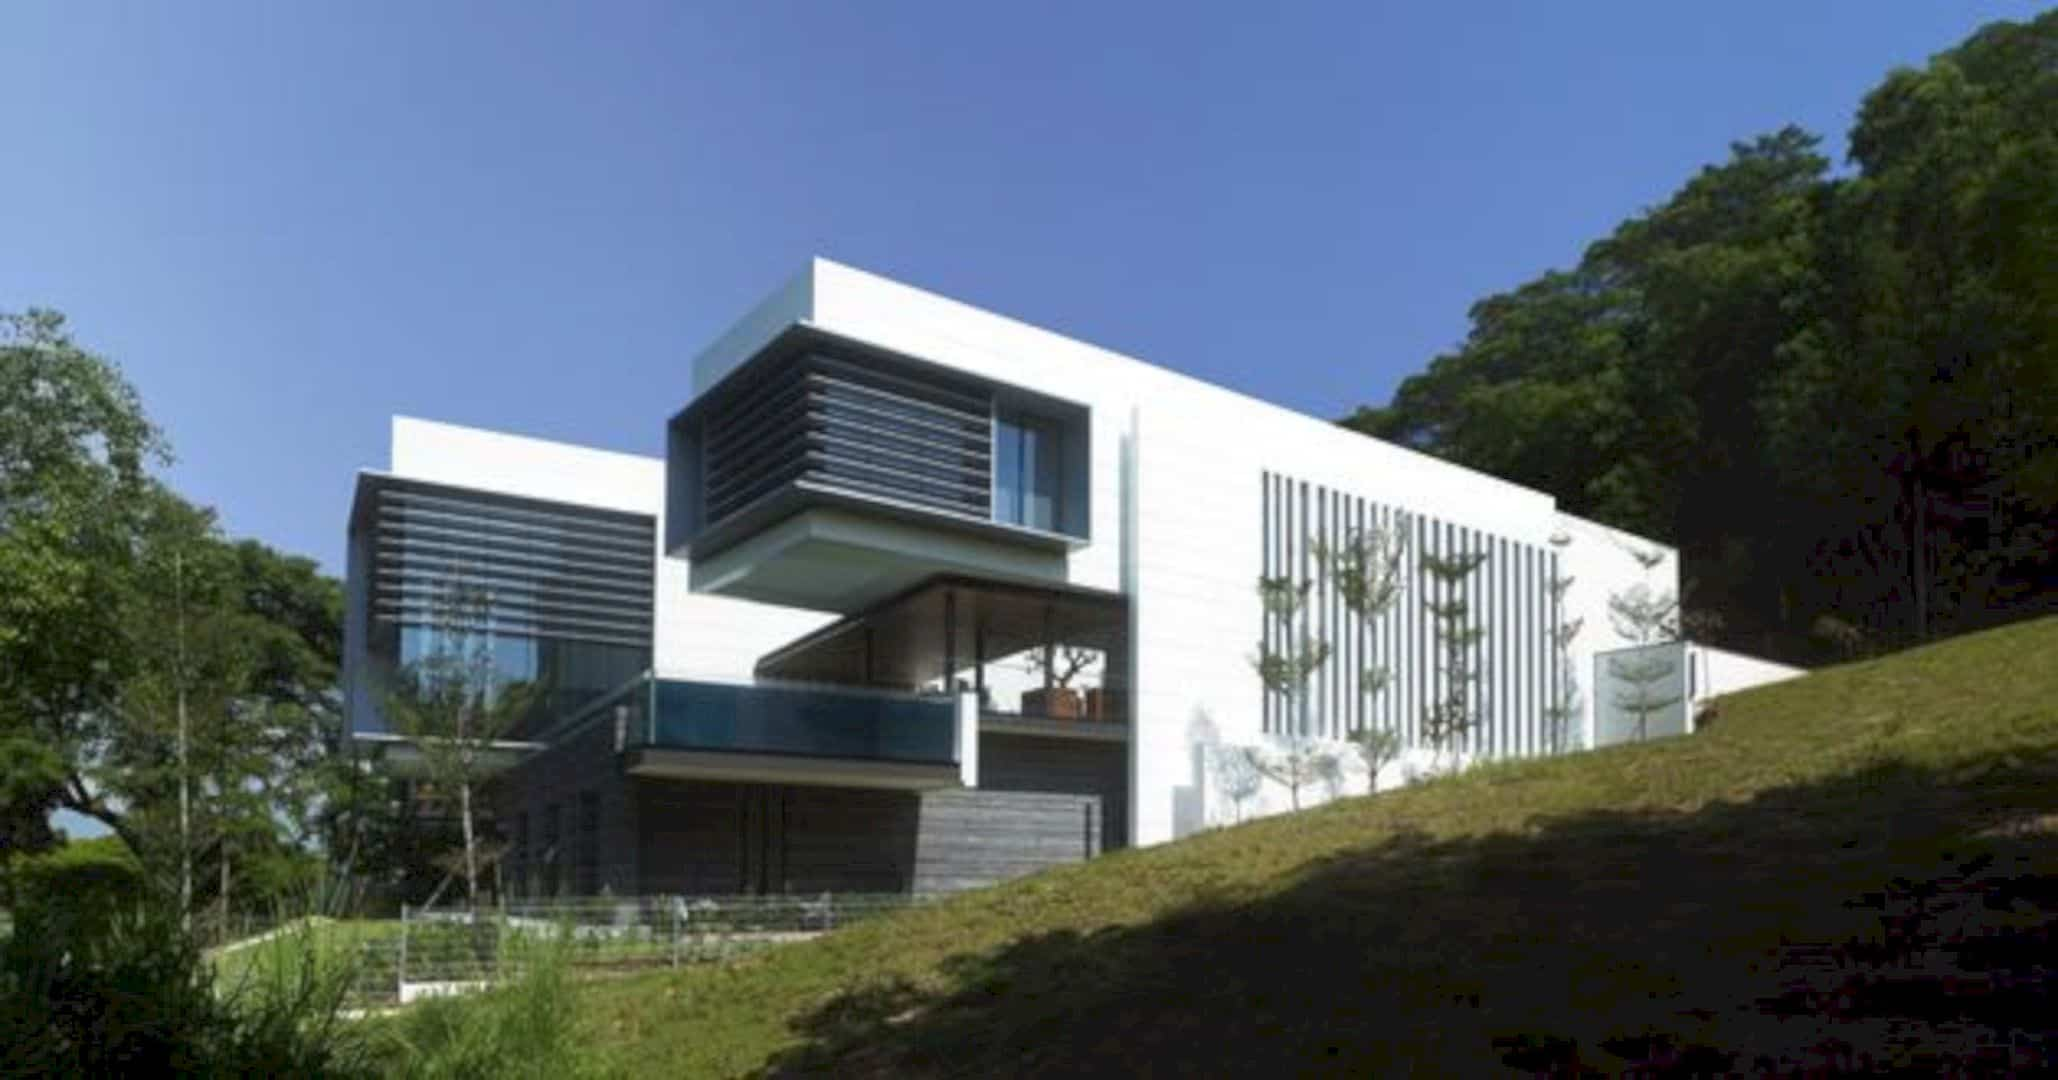 Lakeshore View House A Modern Two Story Home With Suspended Pool 6